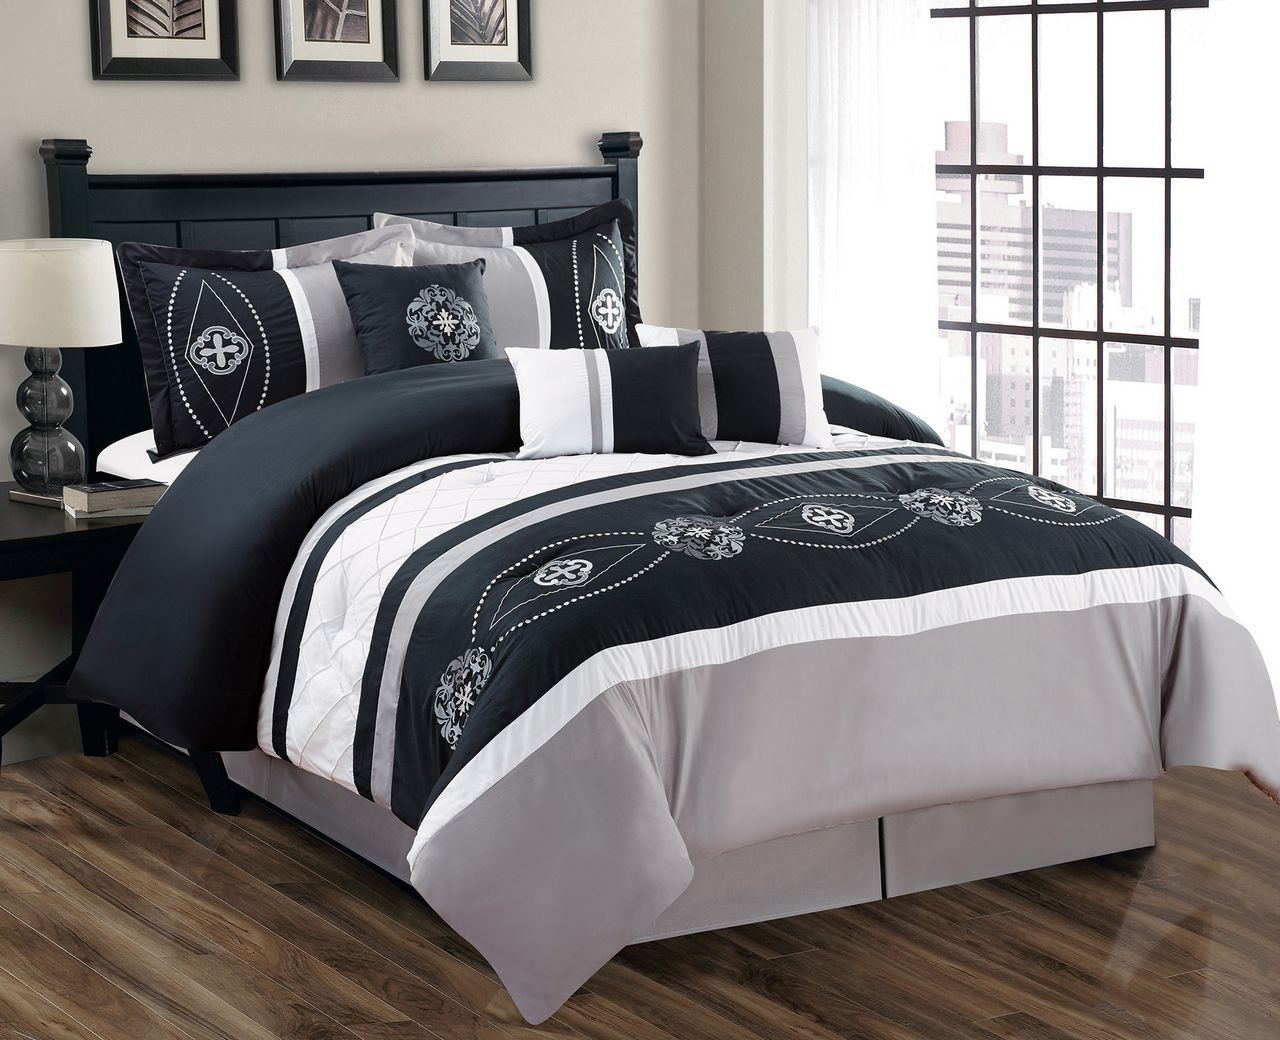 7 Piece Floral Embroidered Black Gray White forter Set